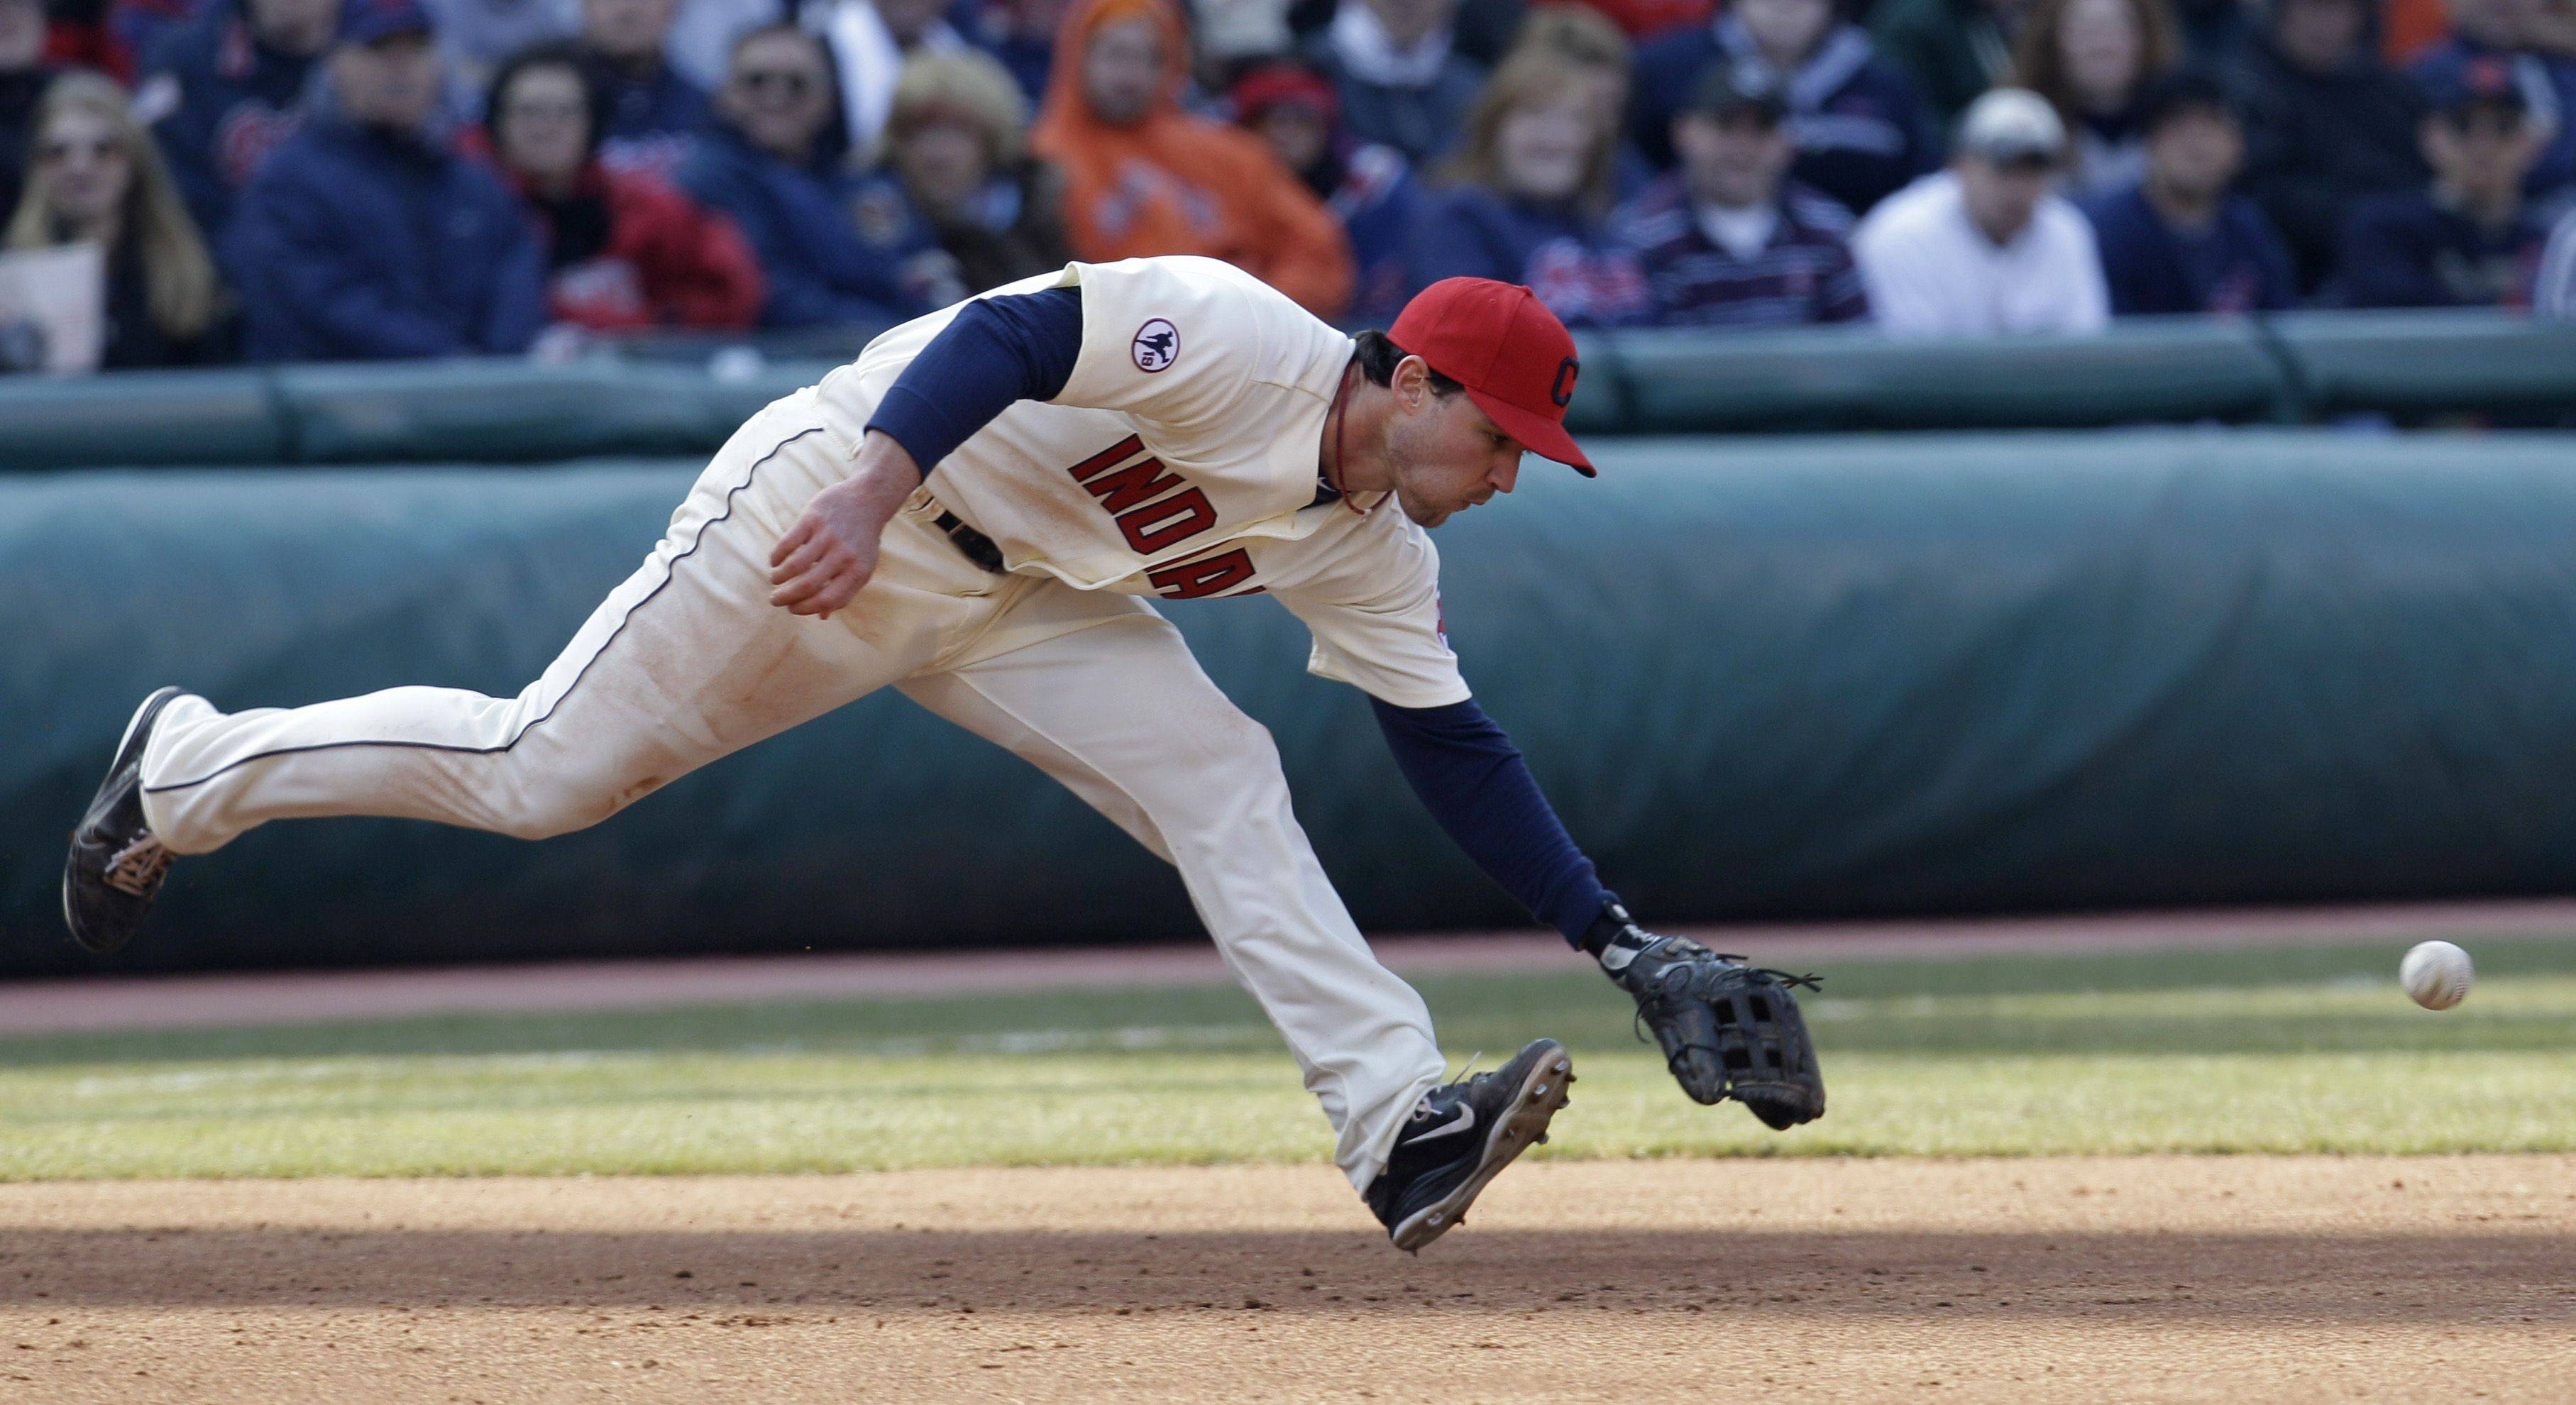 Cleveland Indians third baseman Jack Hannahan goes after a single hit by Chicago White Sox's Paul Konerko in the third inning in an opening day baseball game, Friday, April 1, 2011, in Cleveland.